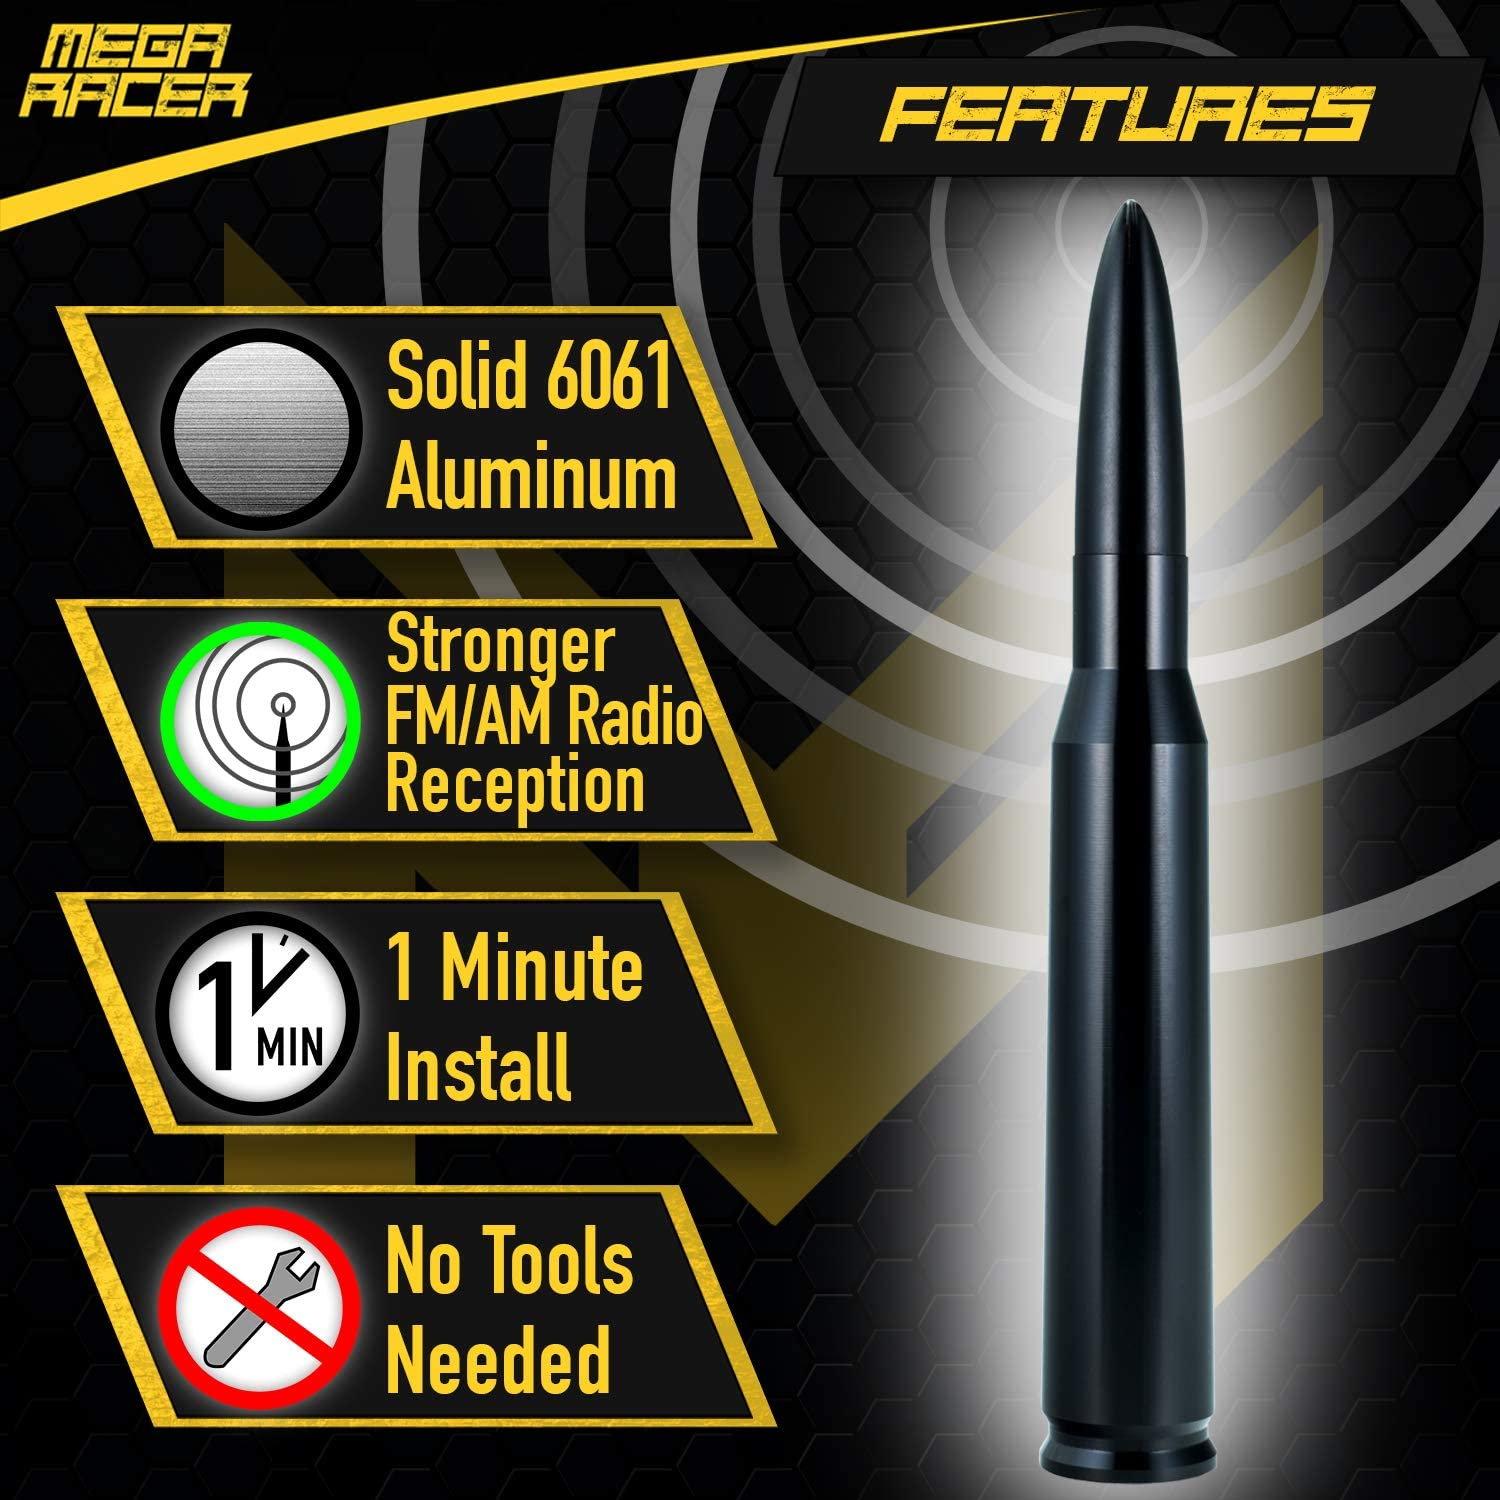 Mega Racer 50 Cal Bullet Antenna for Cars Black 6061 Solid Aluminum Bullet Car Antenna Anti-Theft Design Car Wash Safe 5.5 Inch Universal AM//FM Radio